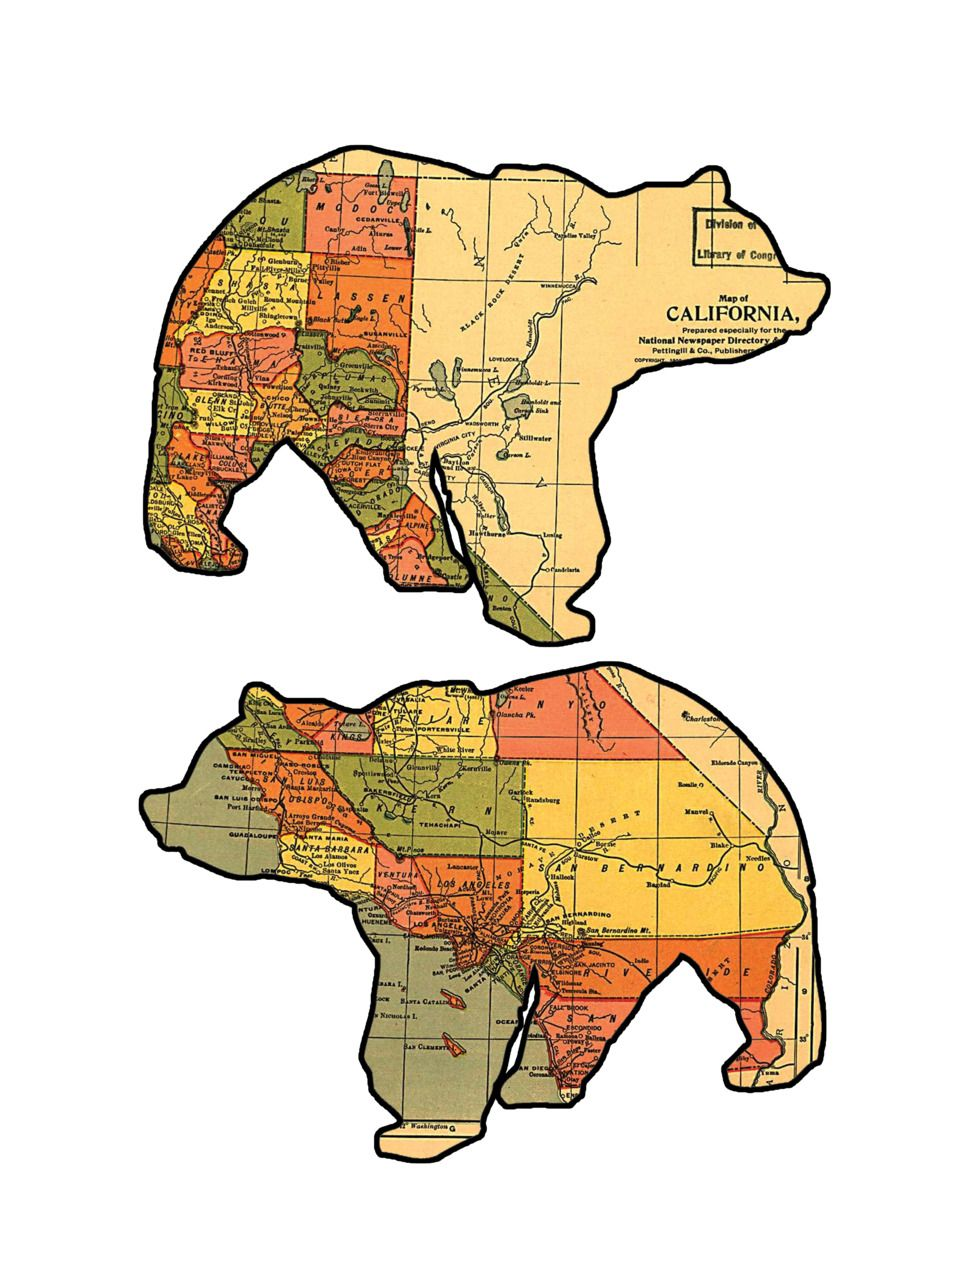 Bears In California Map California Grizzly Bear maps. (With images) | Bear silhouette